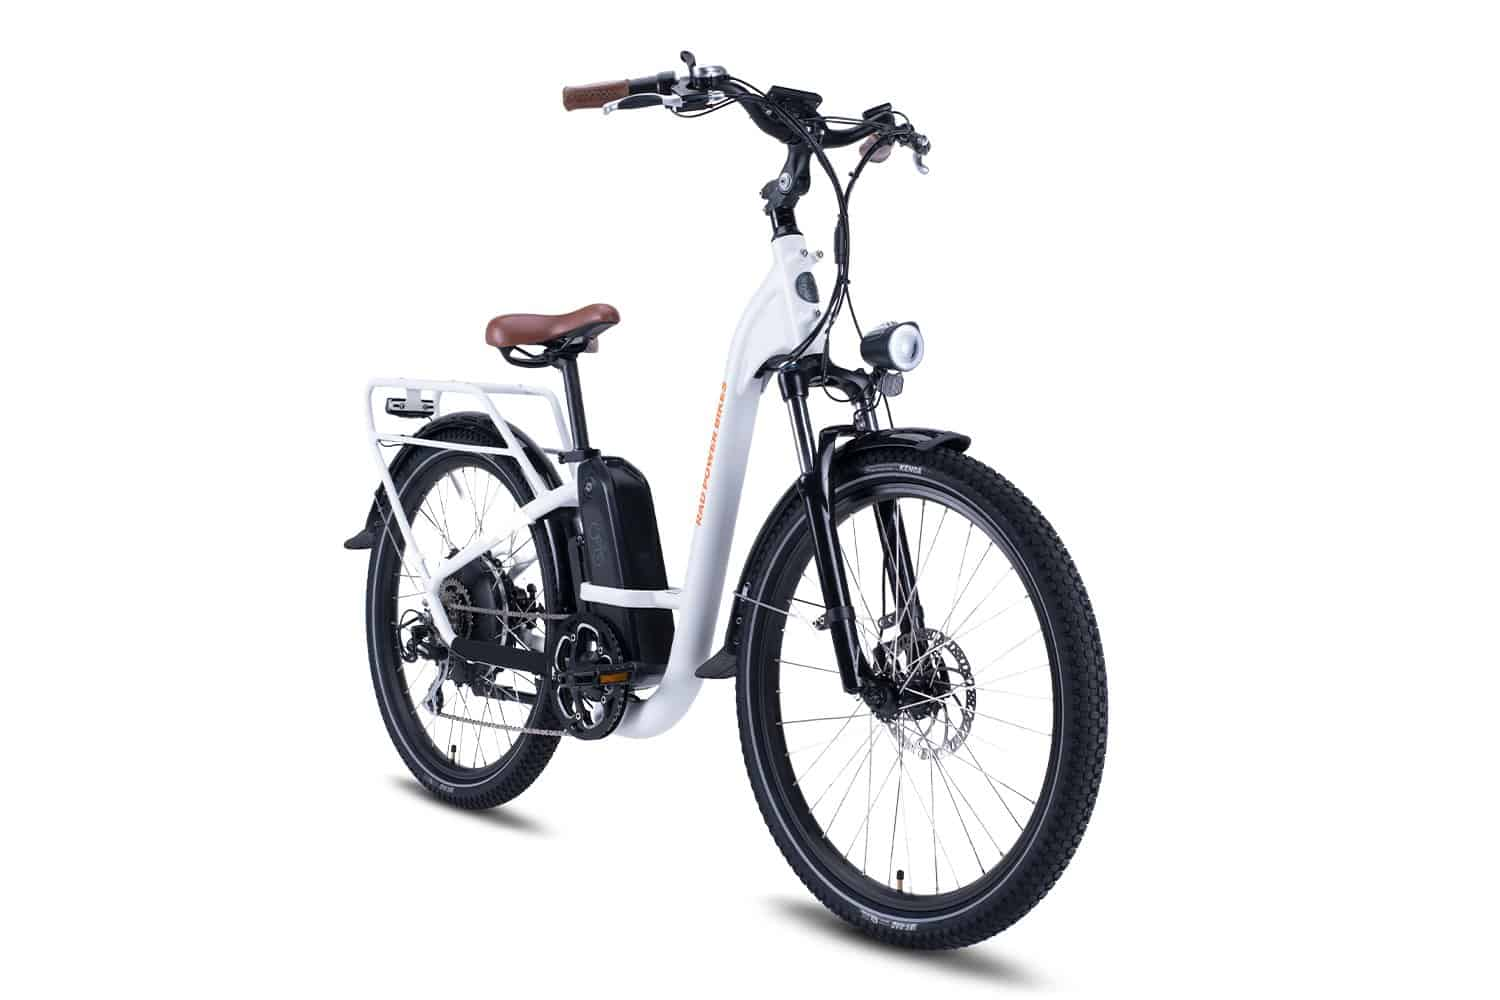 Step-Thru e-bike